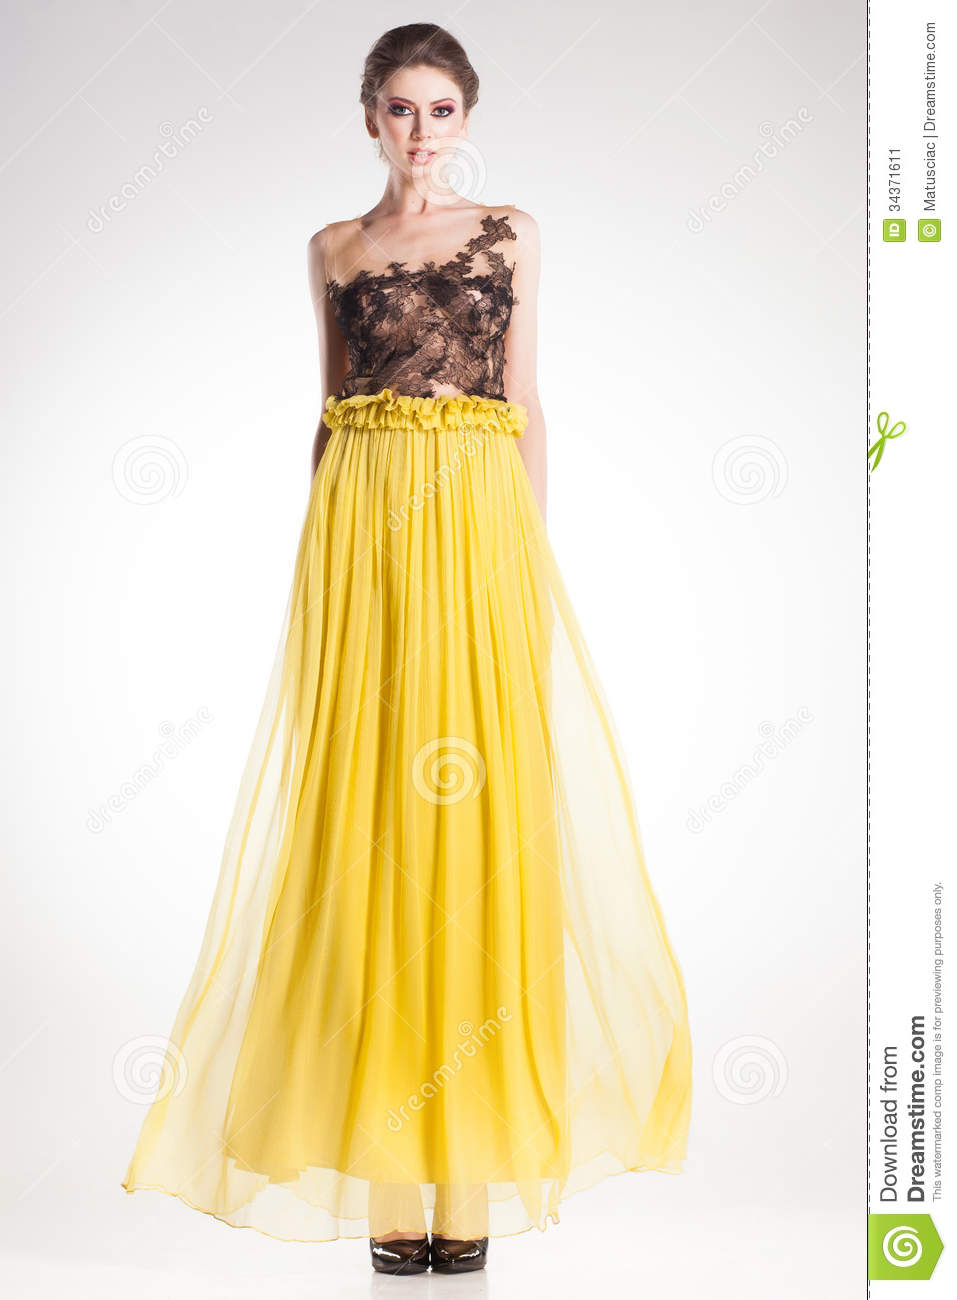 Beautiful woman model posing in long yellow dress with black lace